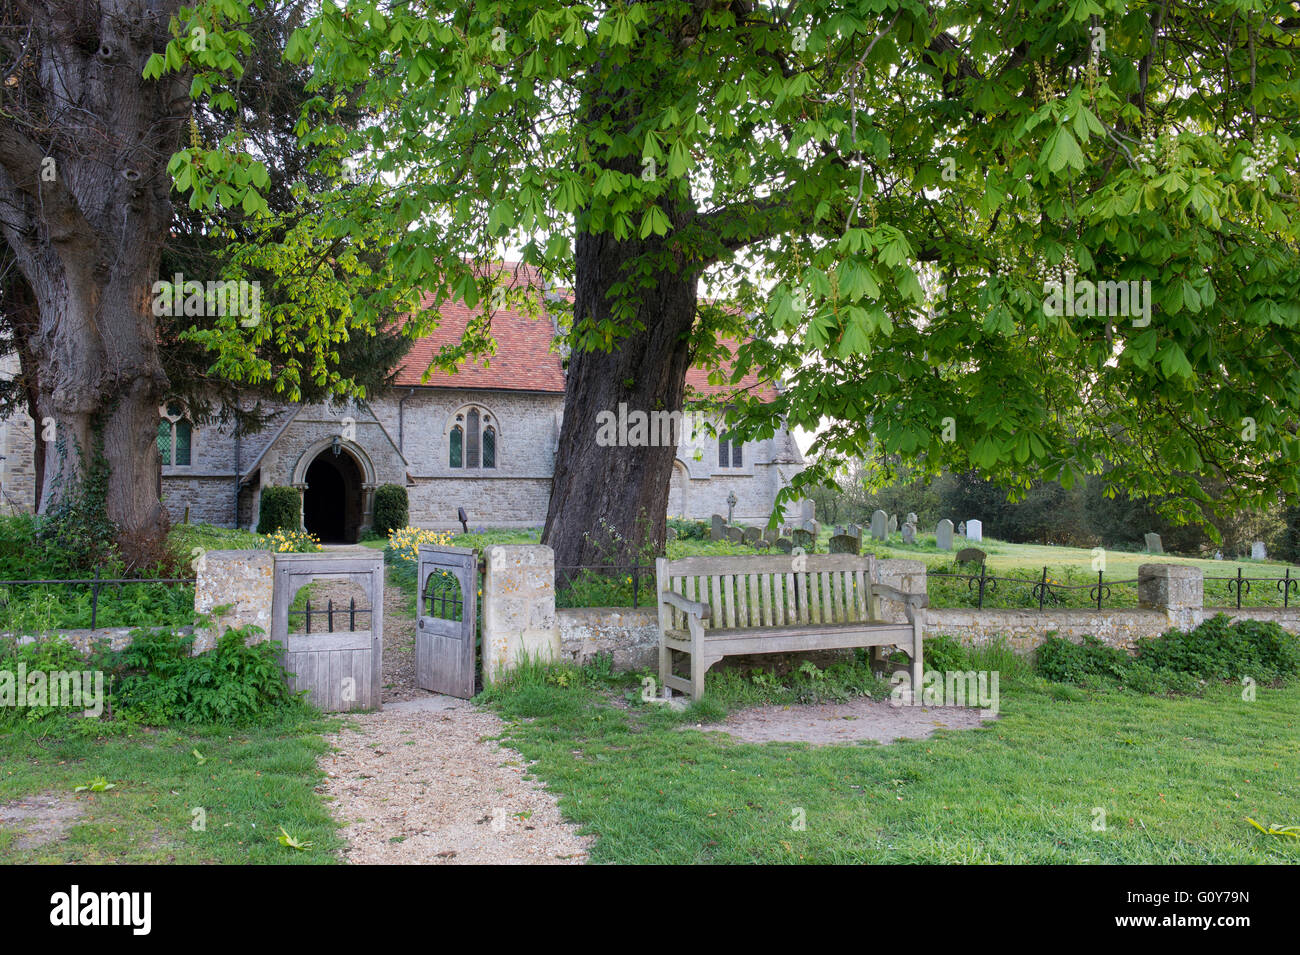 St Peters church, Little Wittenham, South Oxfordshire, England - Stock Image